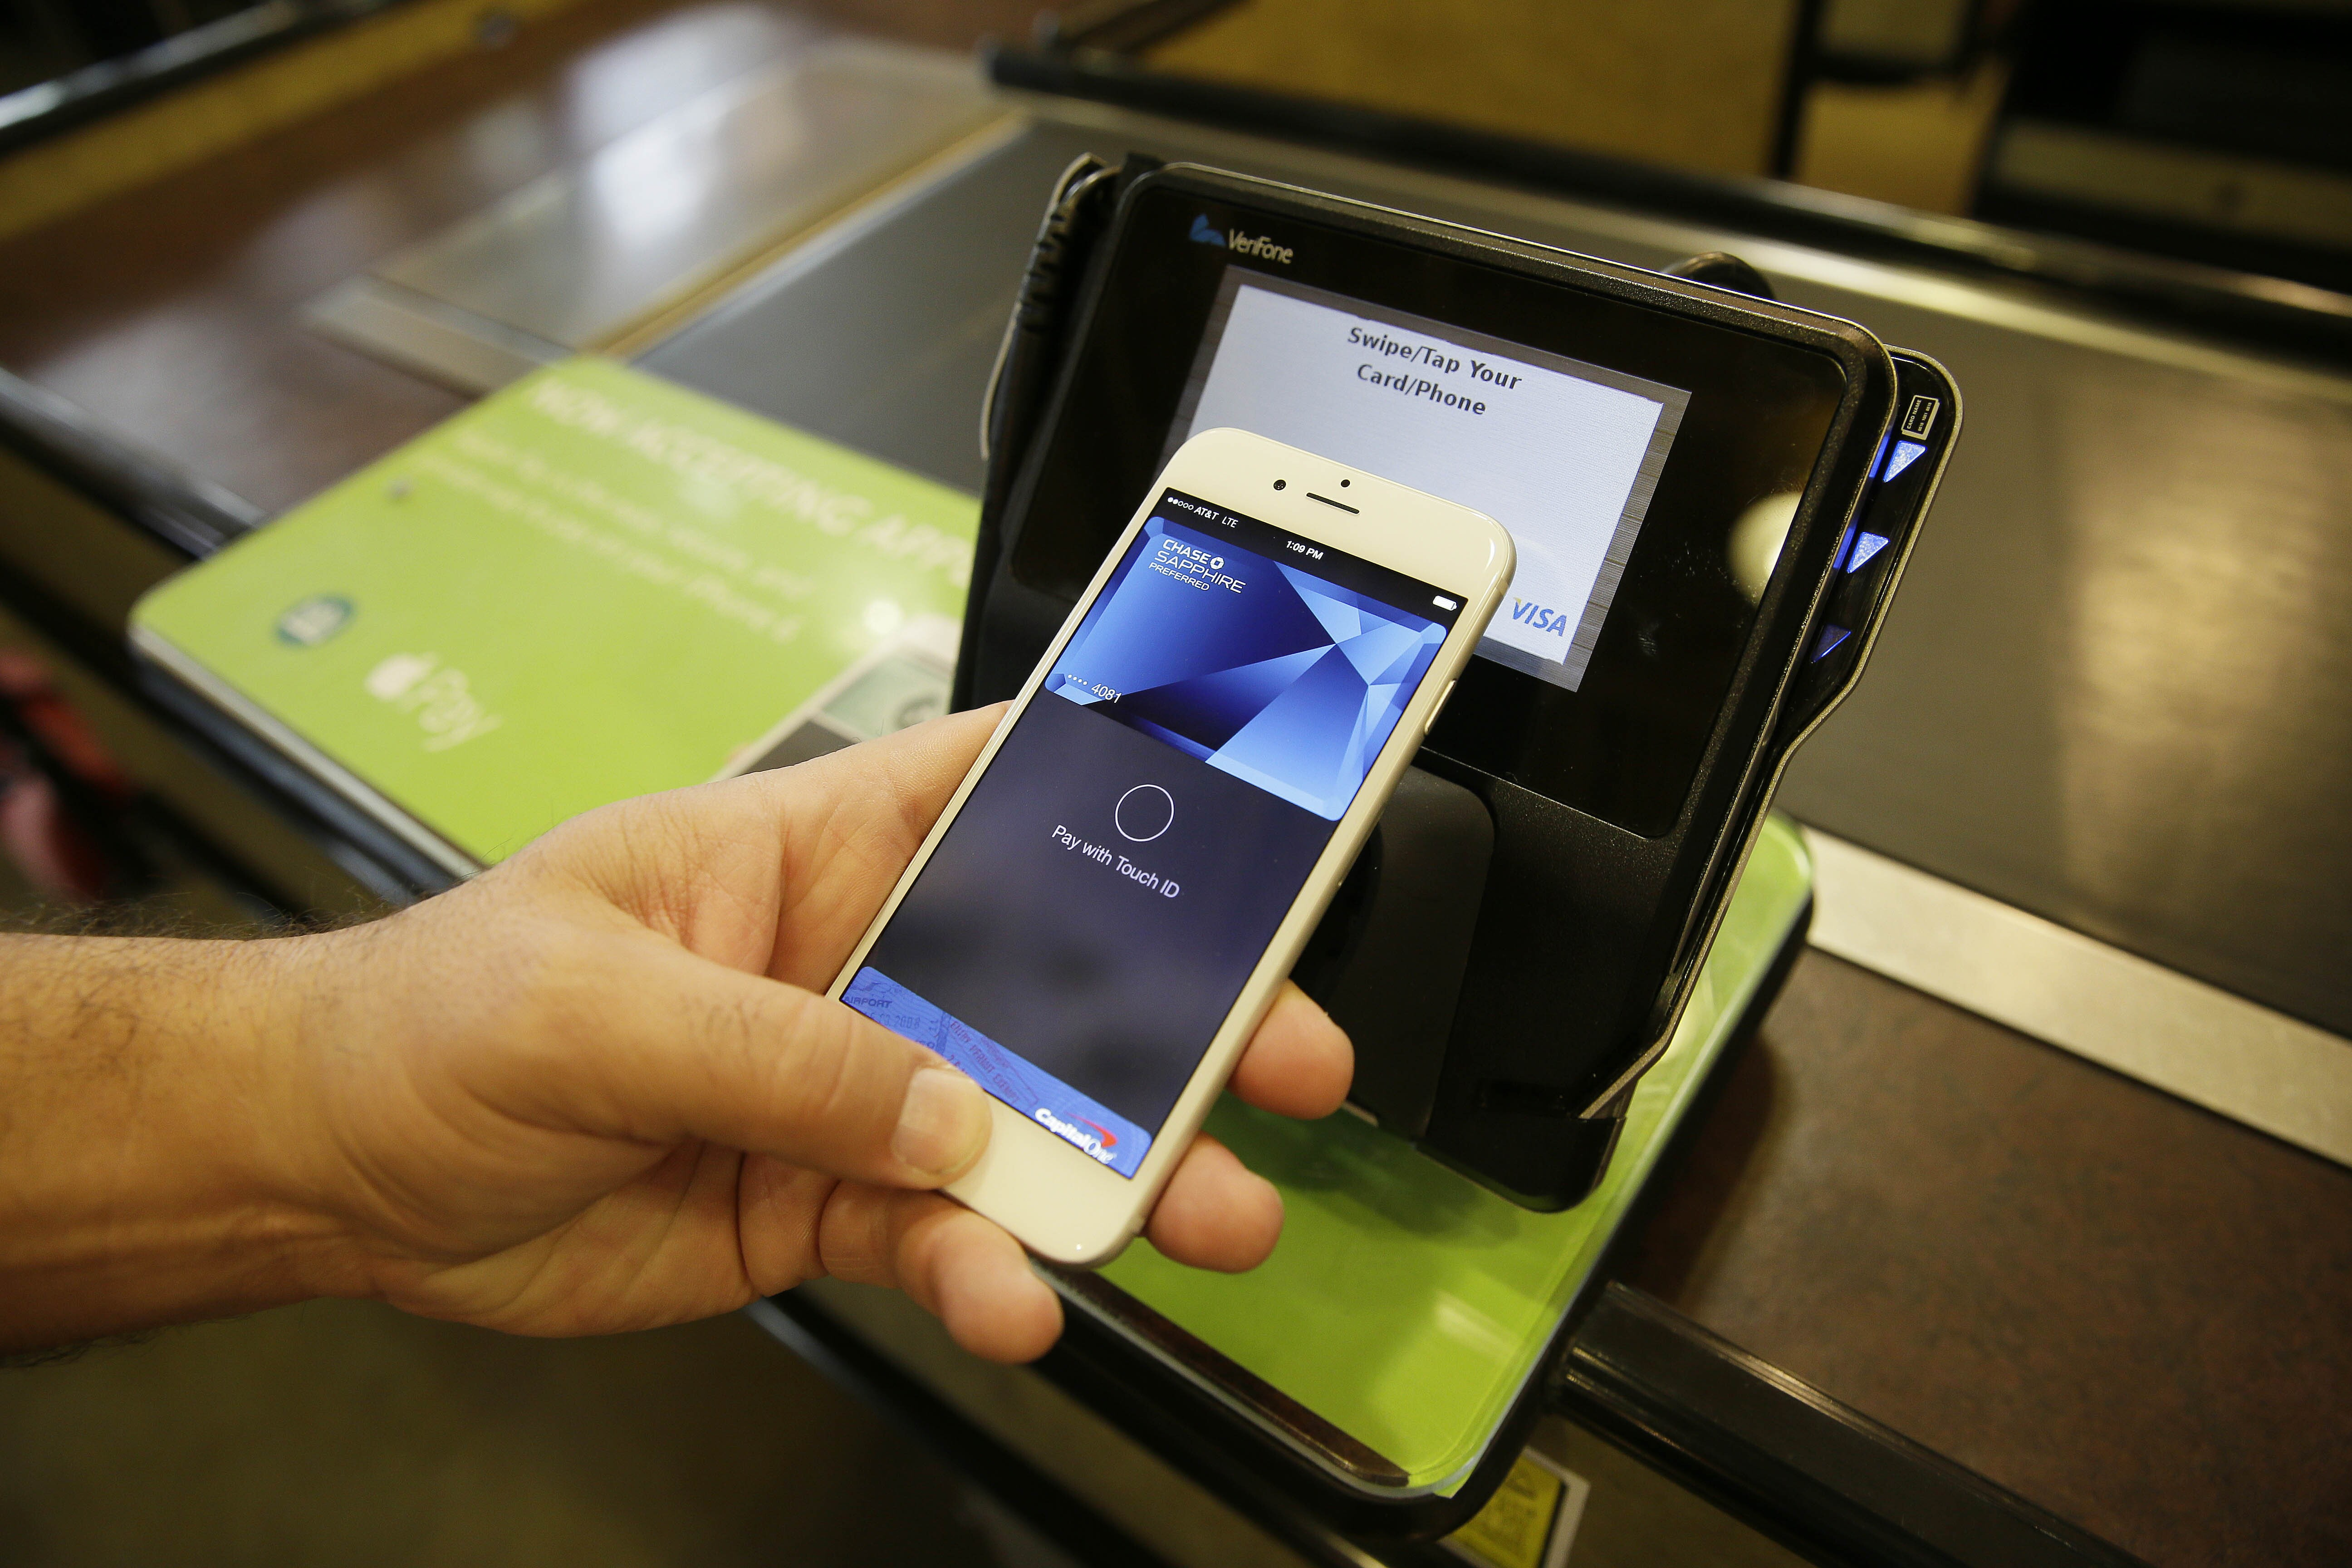 Review: Apple Pay in action